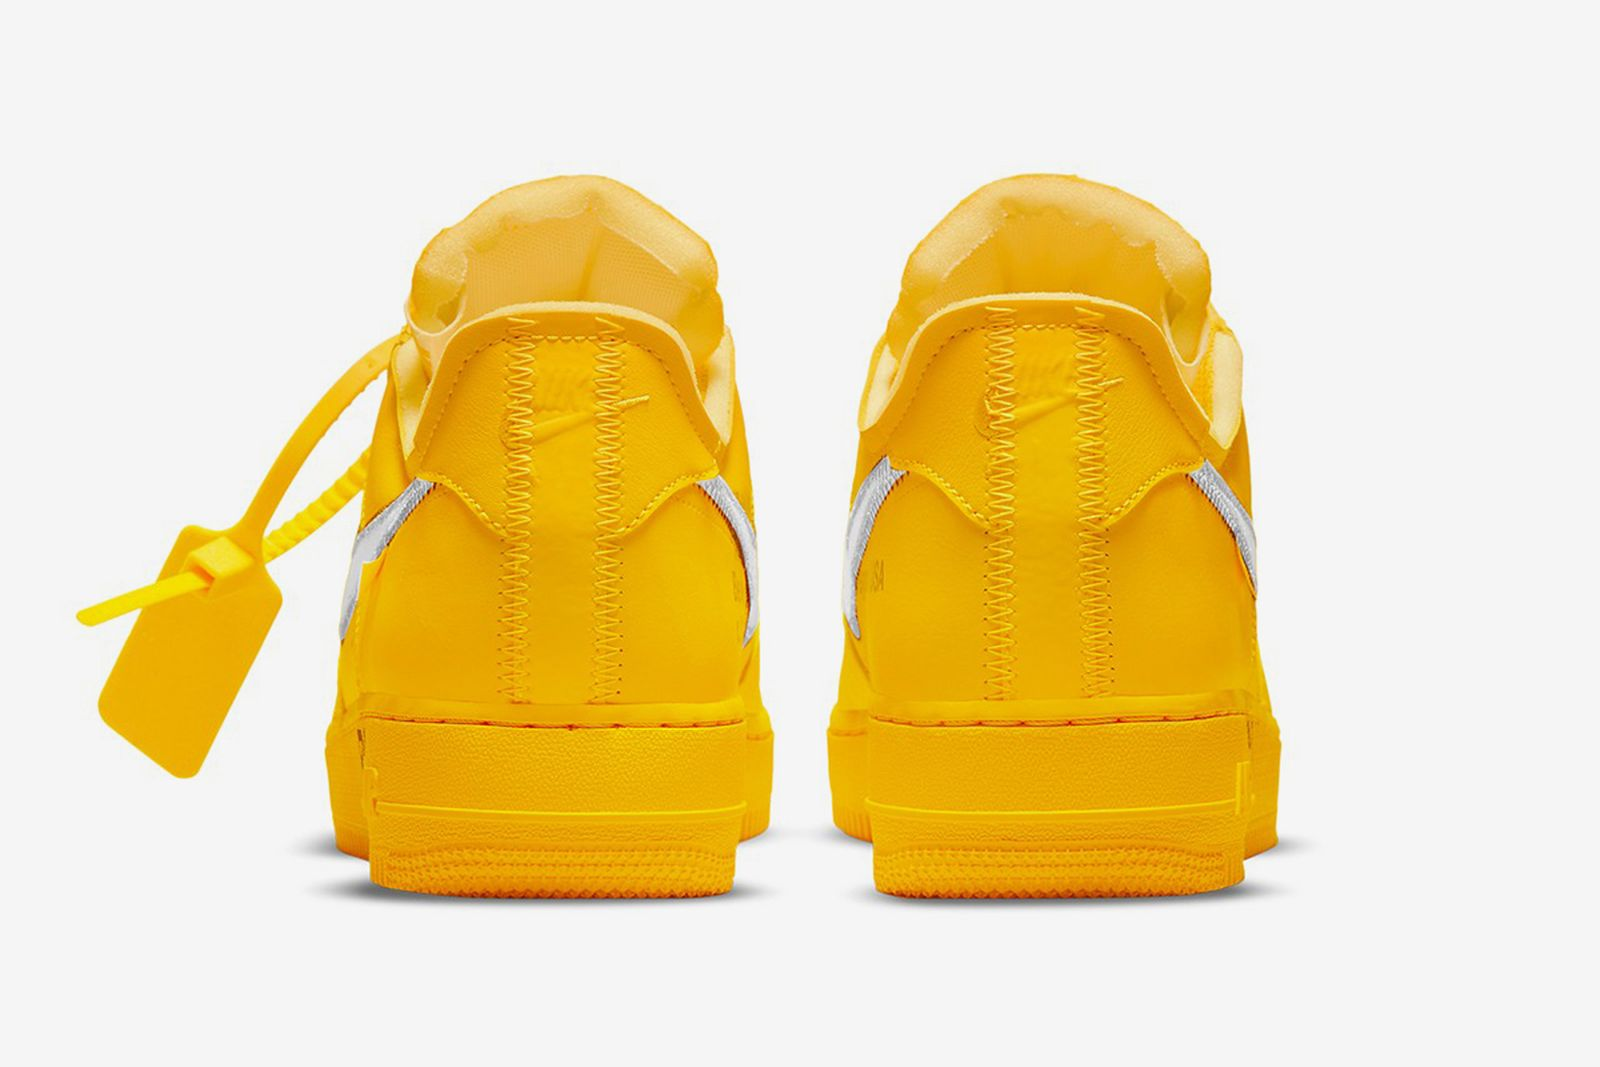 off-white-nike-air-force-1-canary-yellow-release-date-price-05